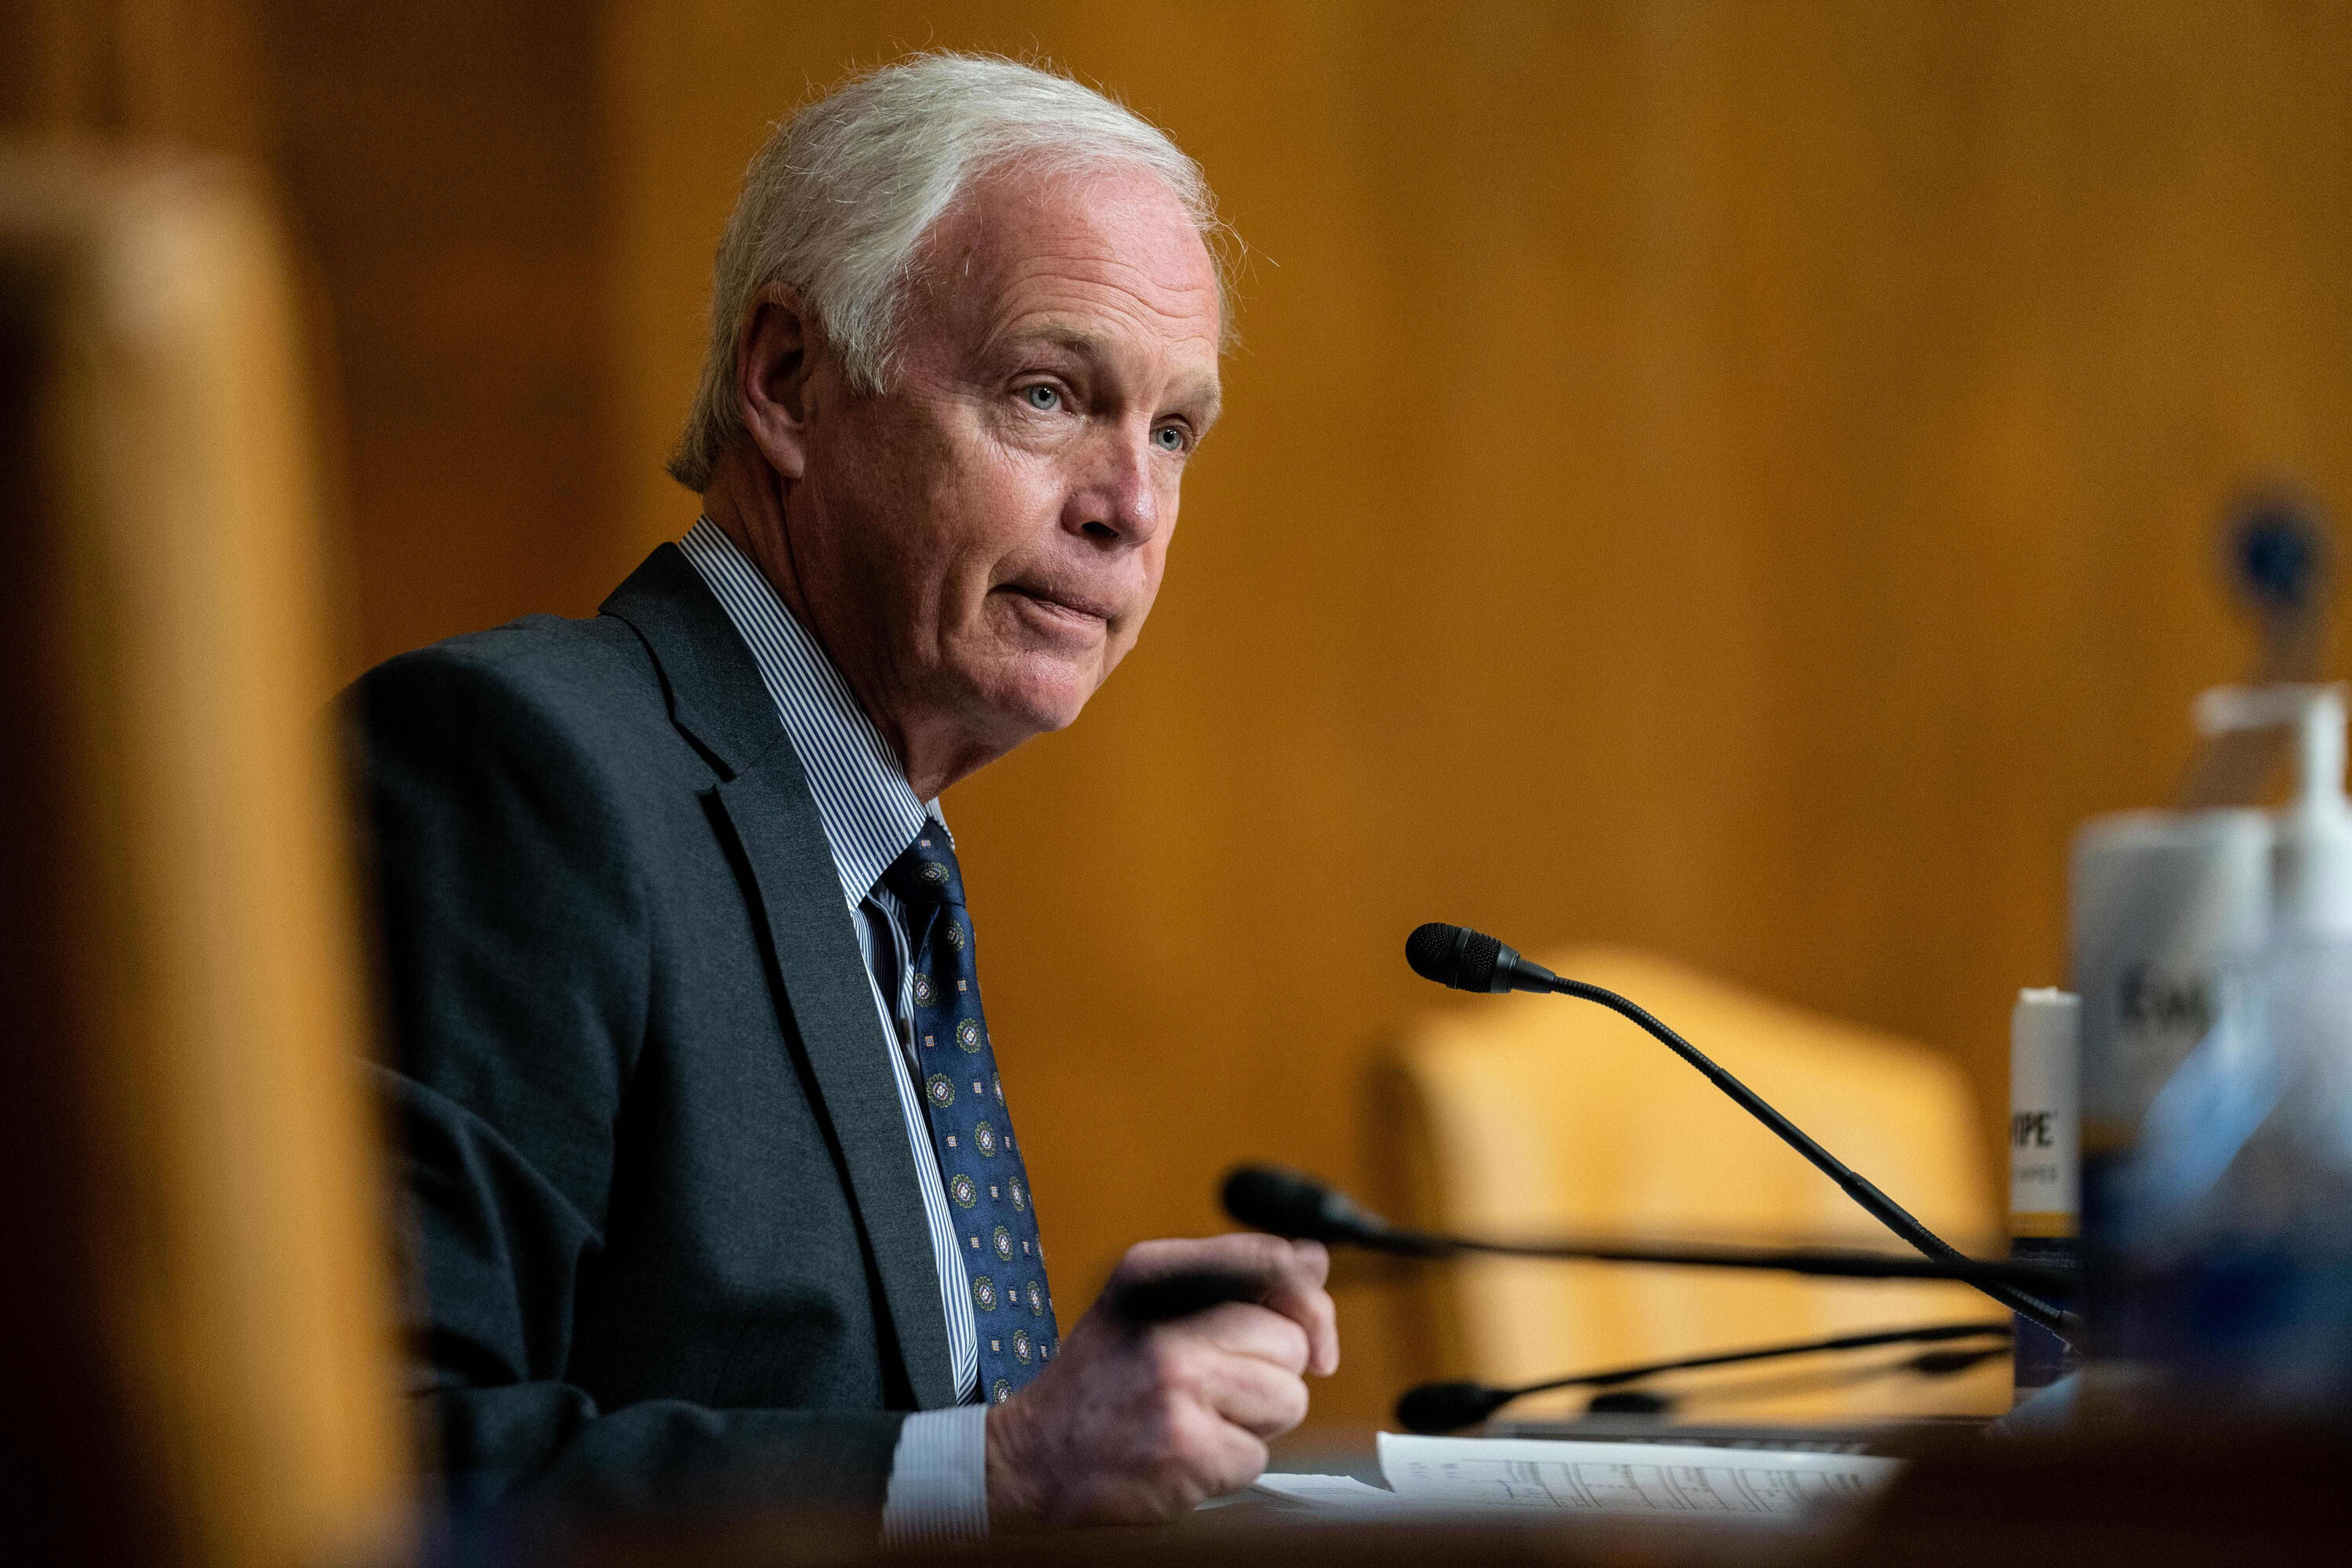 GOP Sen. Ron Johnson mouths to GOP luncheon that climate change is 'bullsh*t'